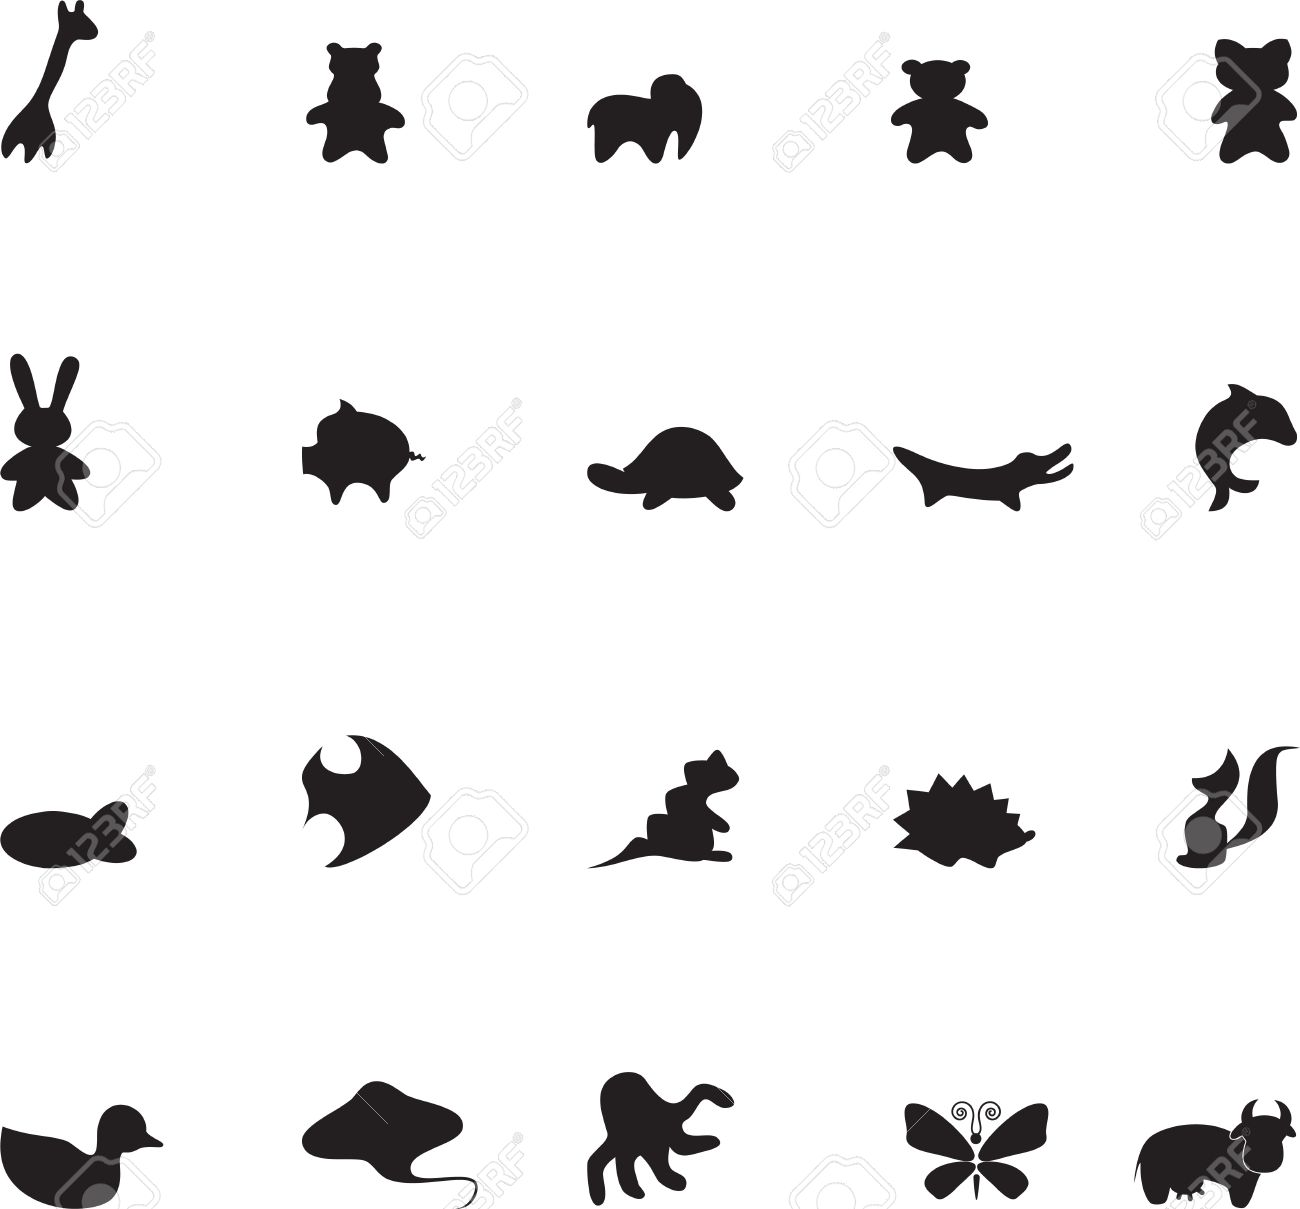 Set of contour animals for childrens illustrations 1 Stock Vector - 13329111